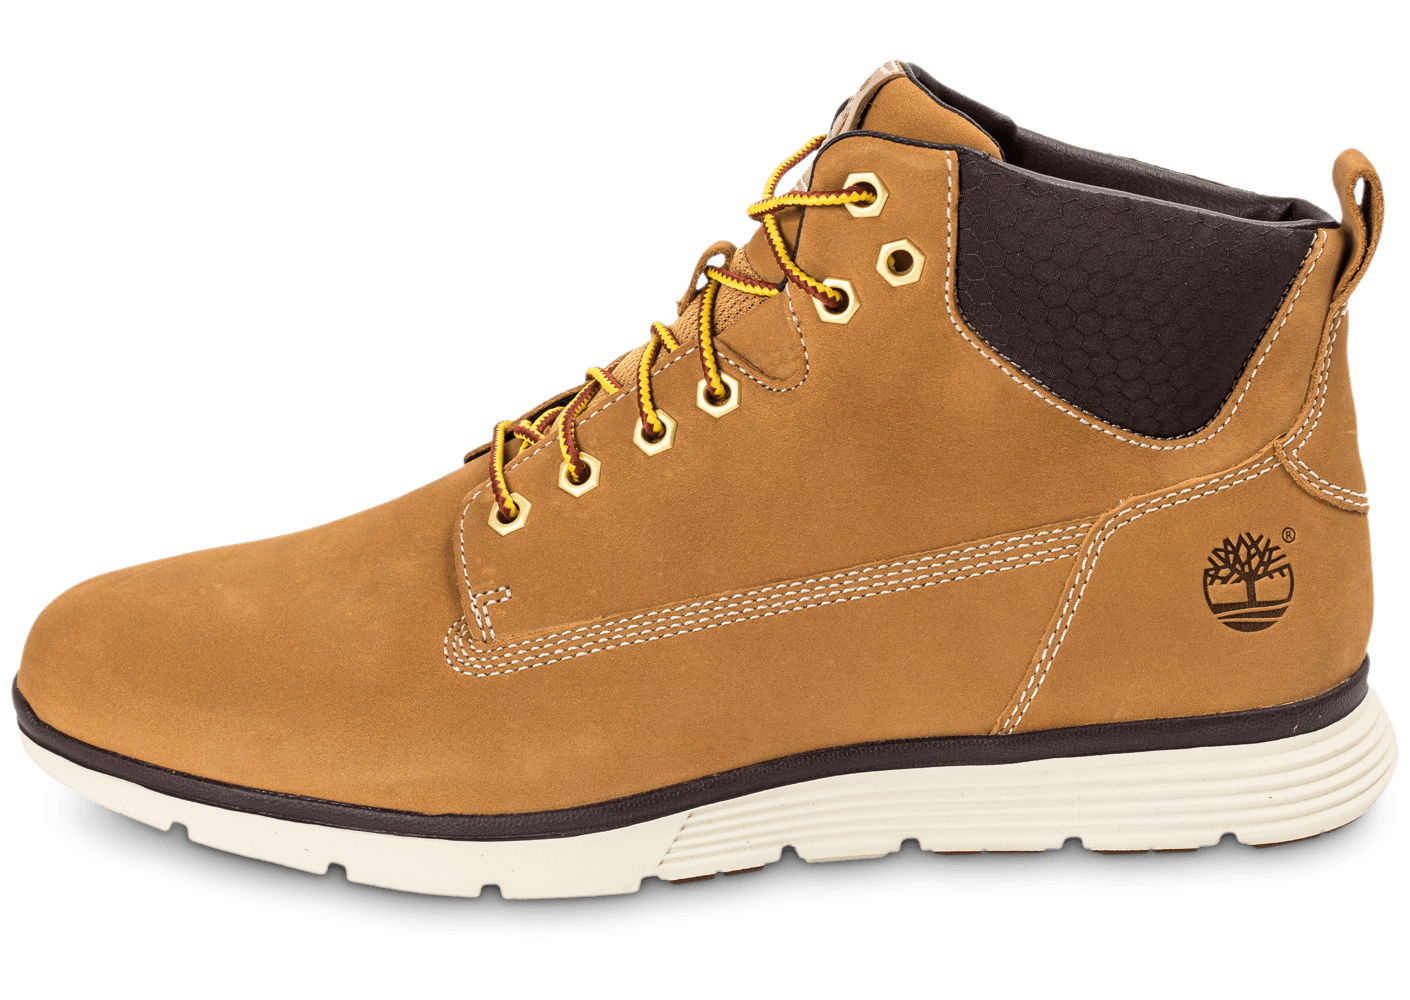 timberland killington chukka beige chaussures homme chausport. Black Bedroom Furniture Sets. Home Design Ideas